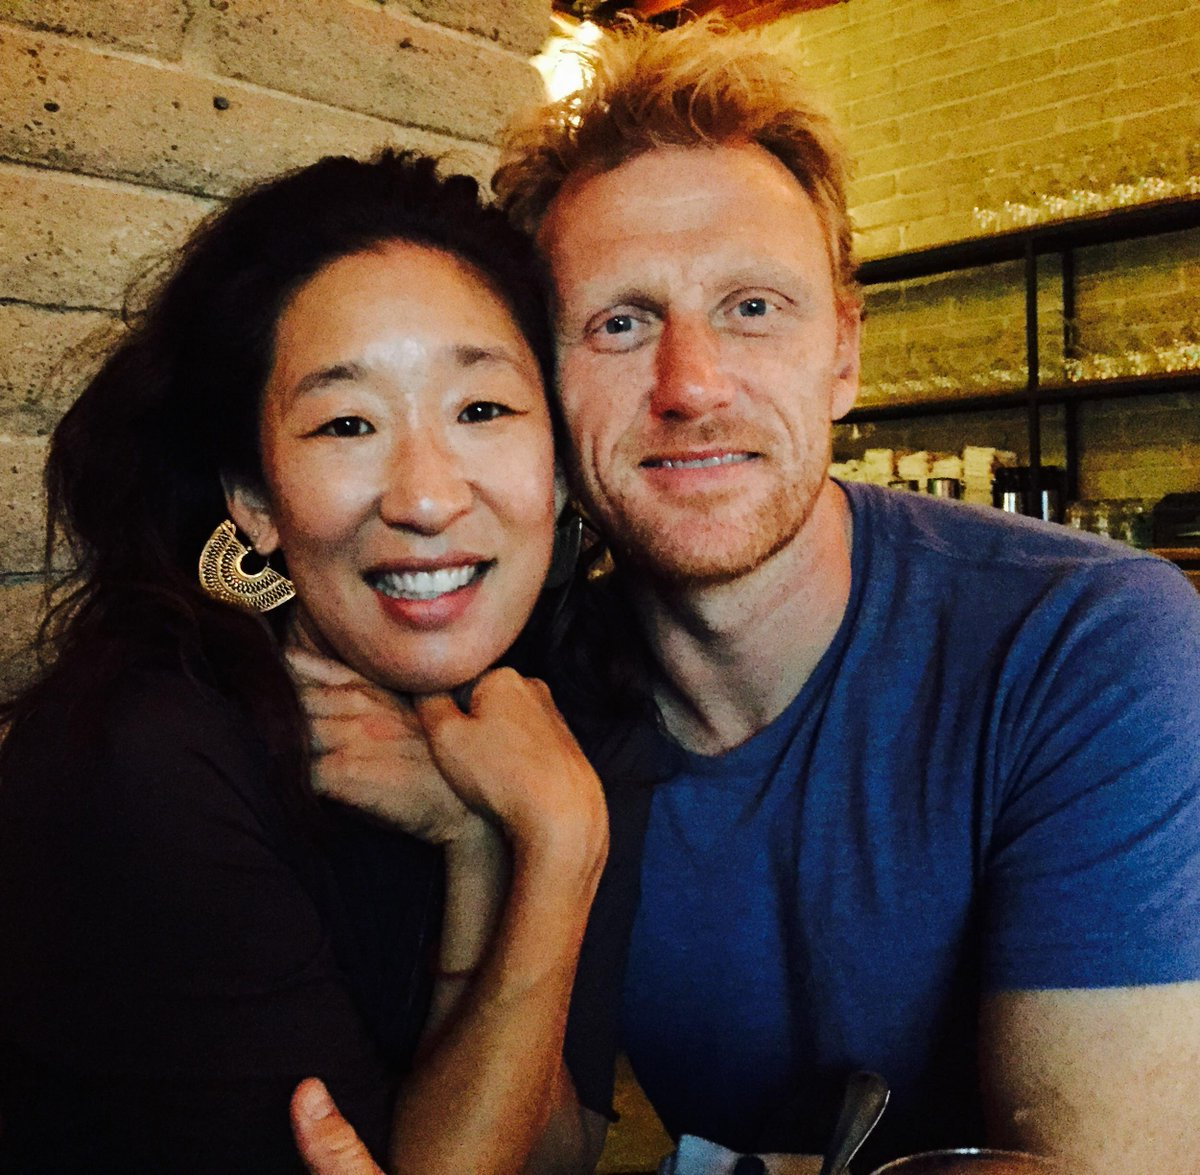 me & @TheRealKMcKidd at his belated bday dinner. May u catch Brave New Waves all this year dearest friend.